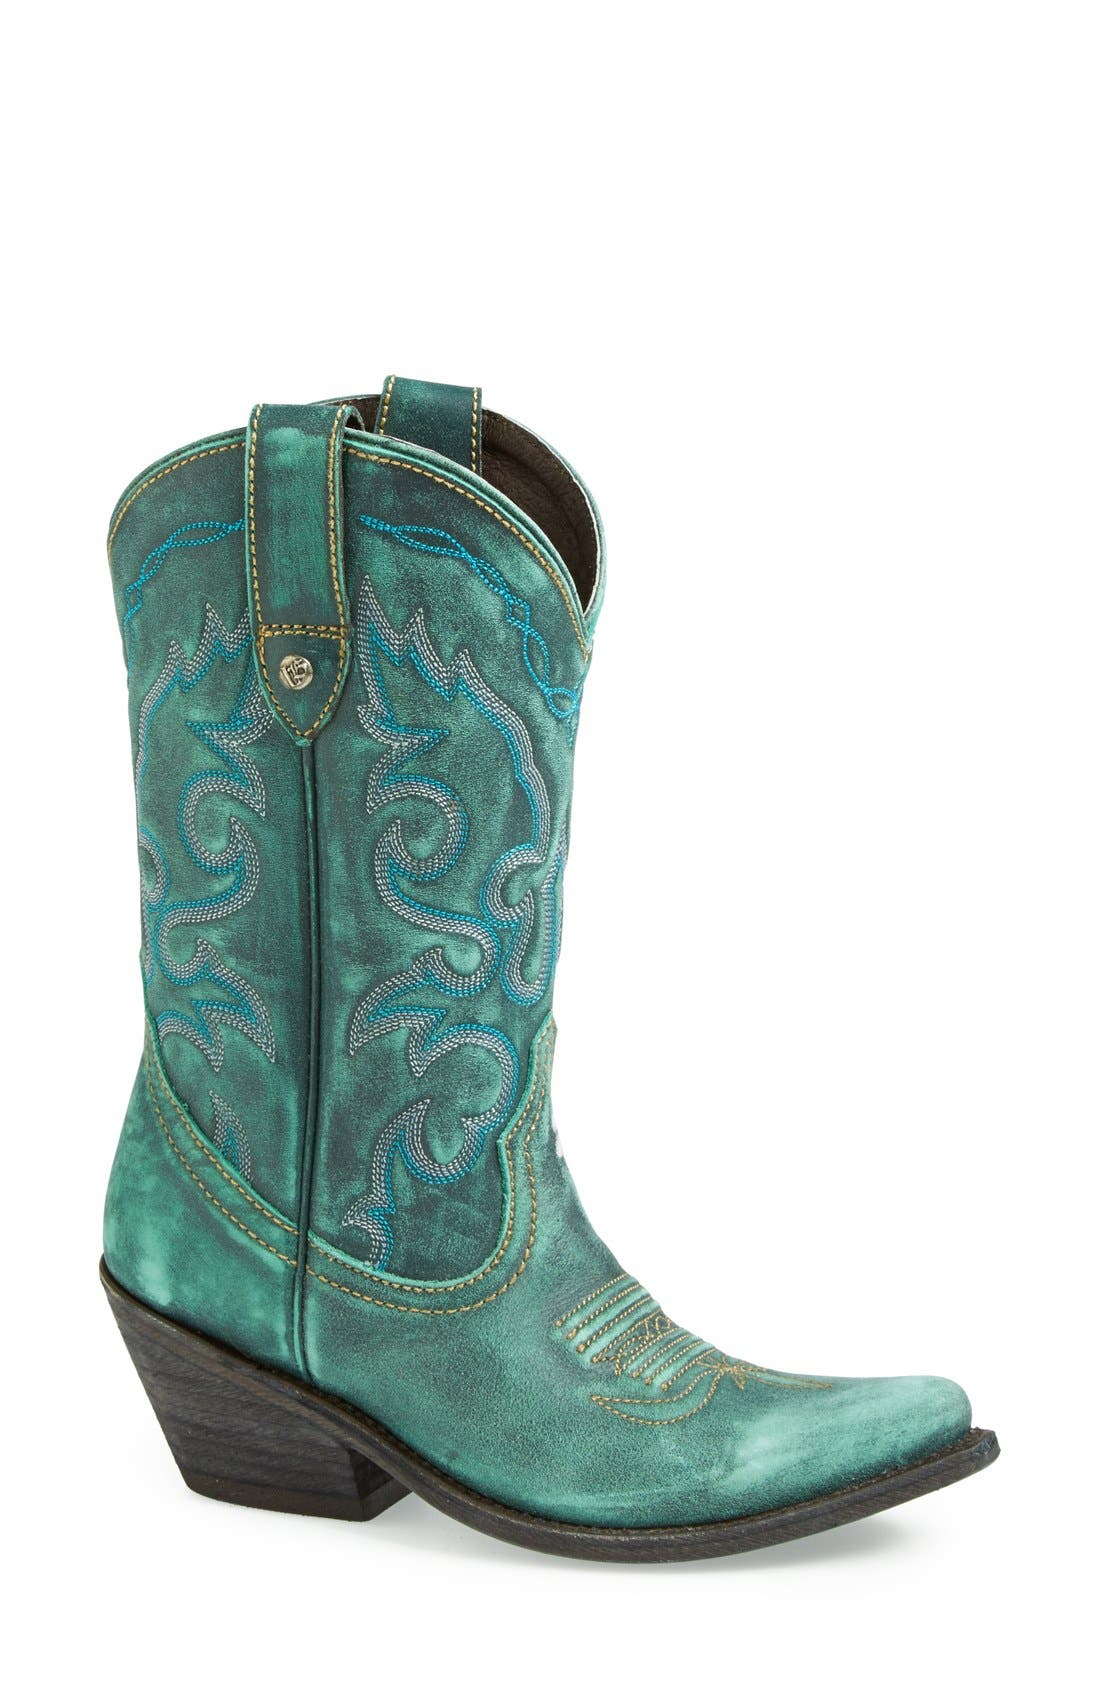 Alternate Image 1 Selected - Liberty Black Western Leather Boot (Women)